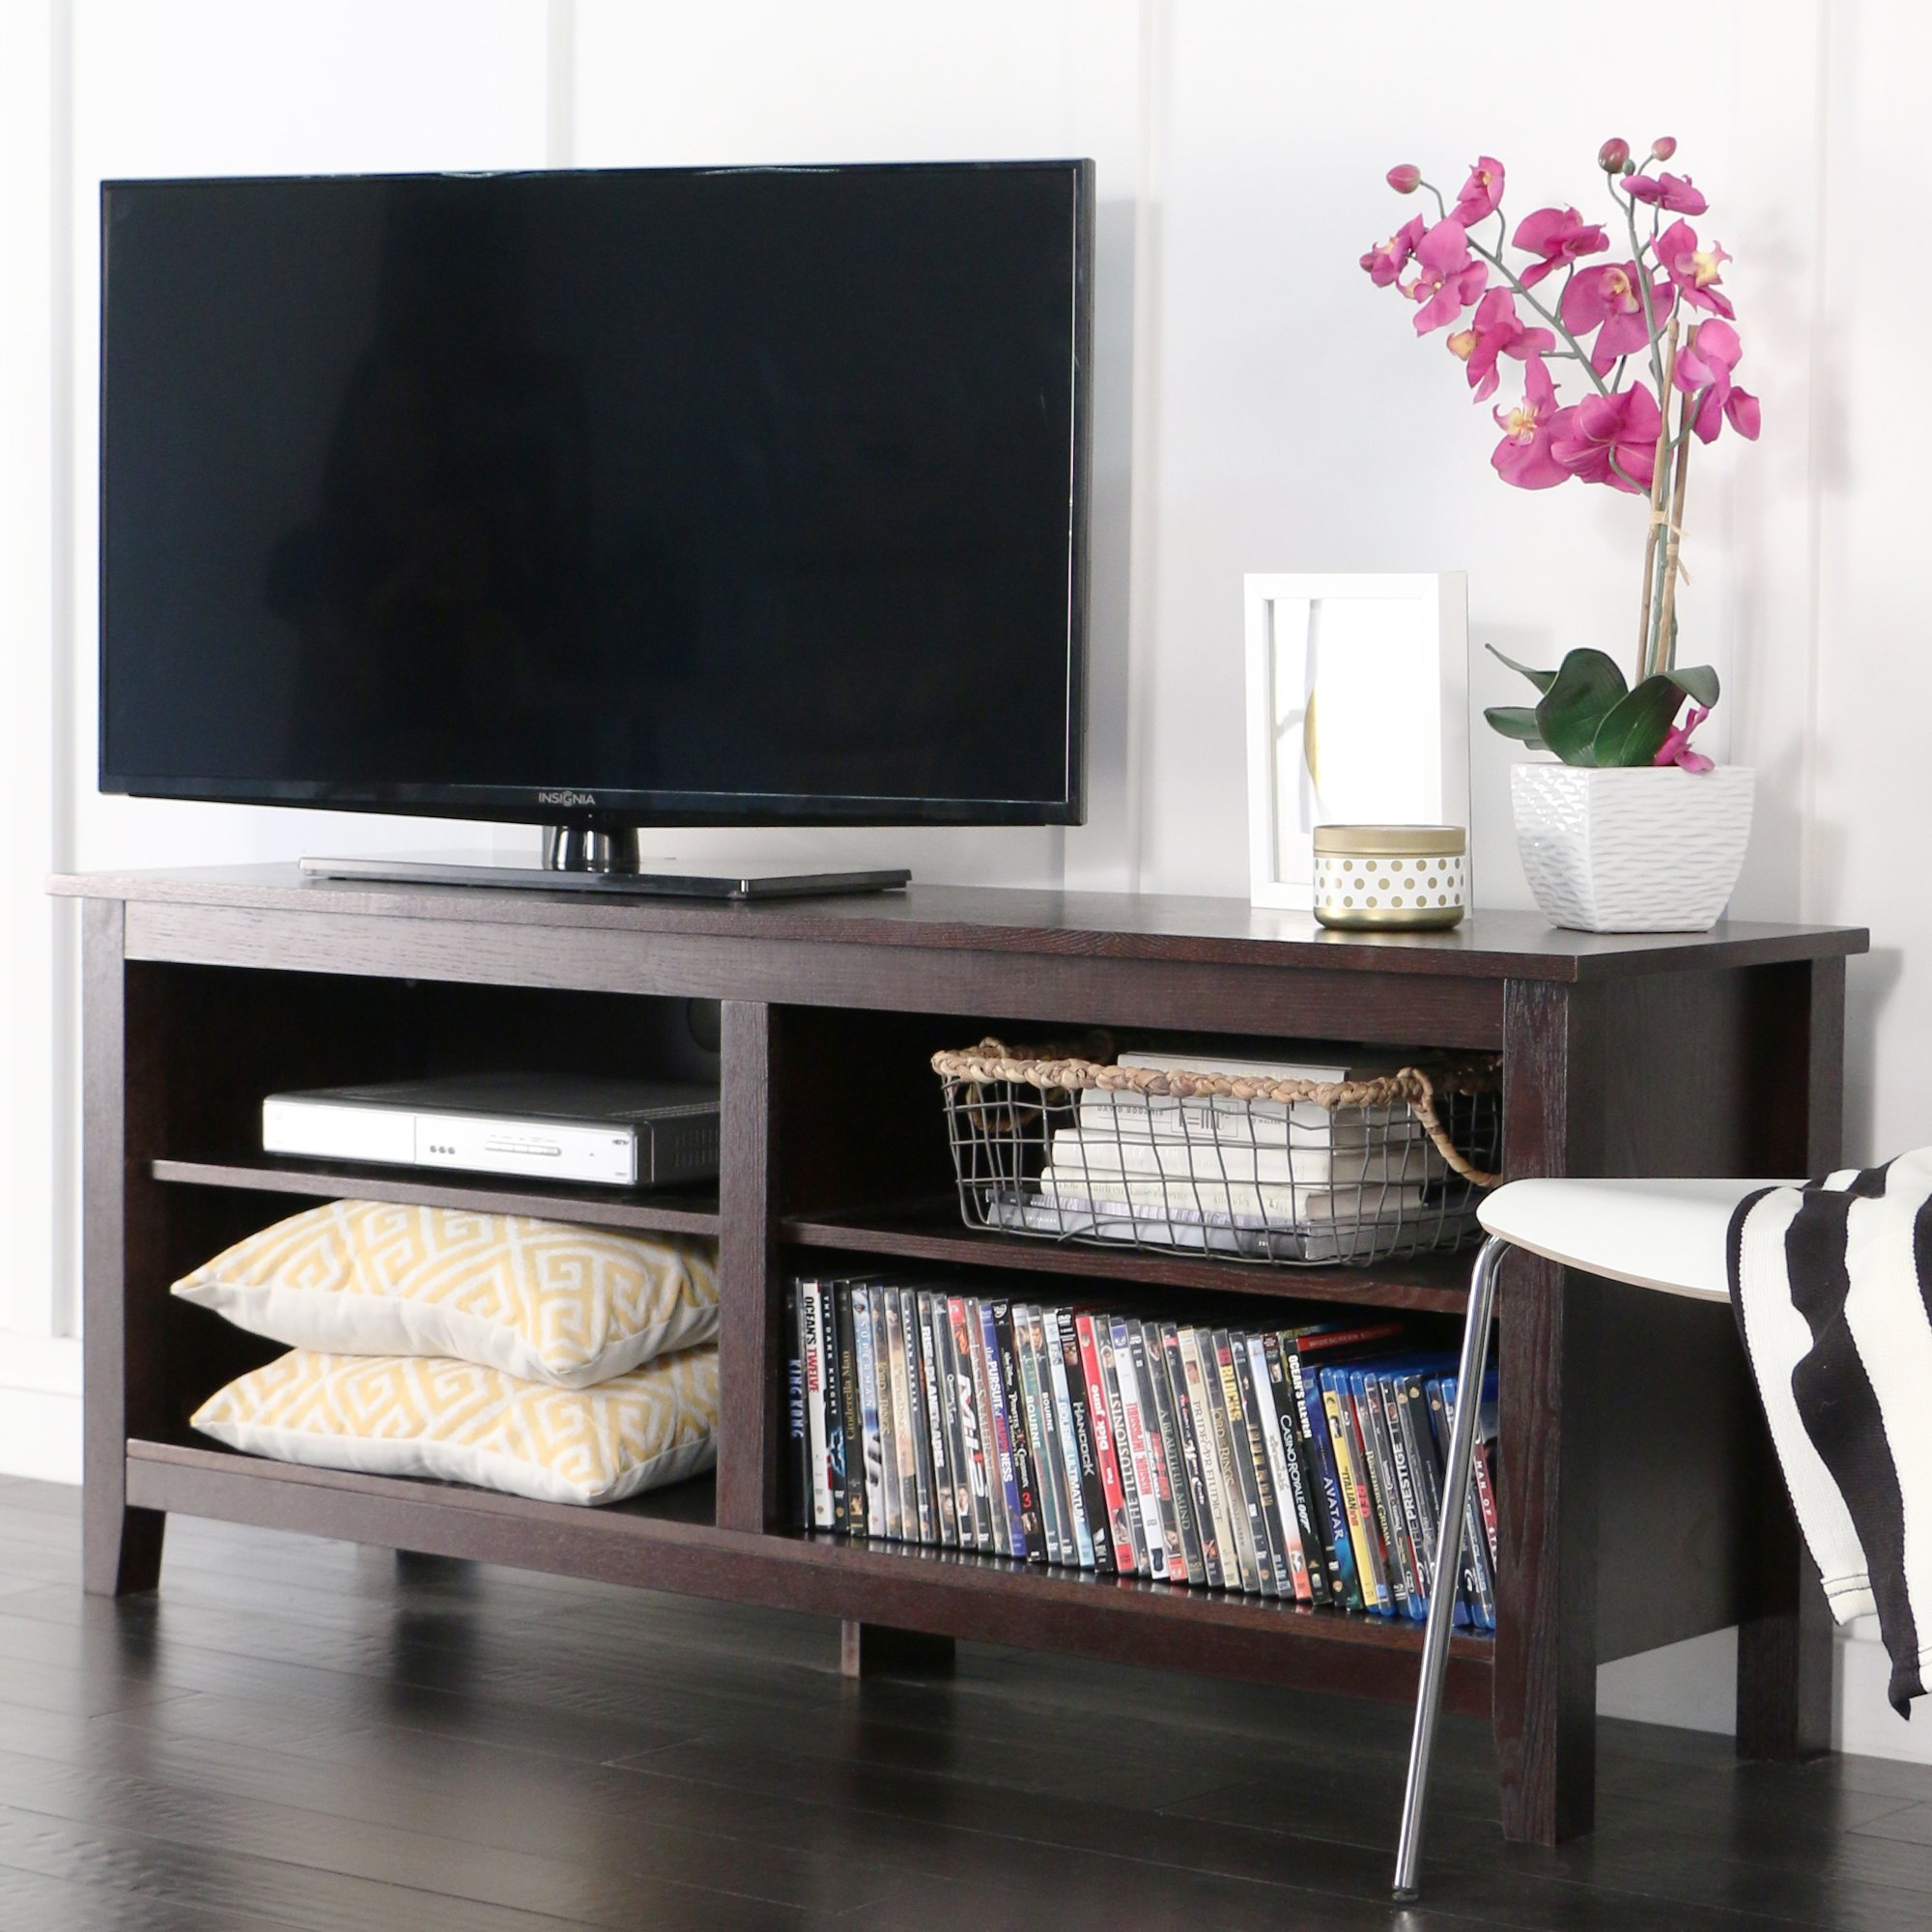 WE Furniture 58'' Wood TV Stand Storage Console, Espresso